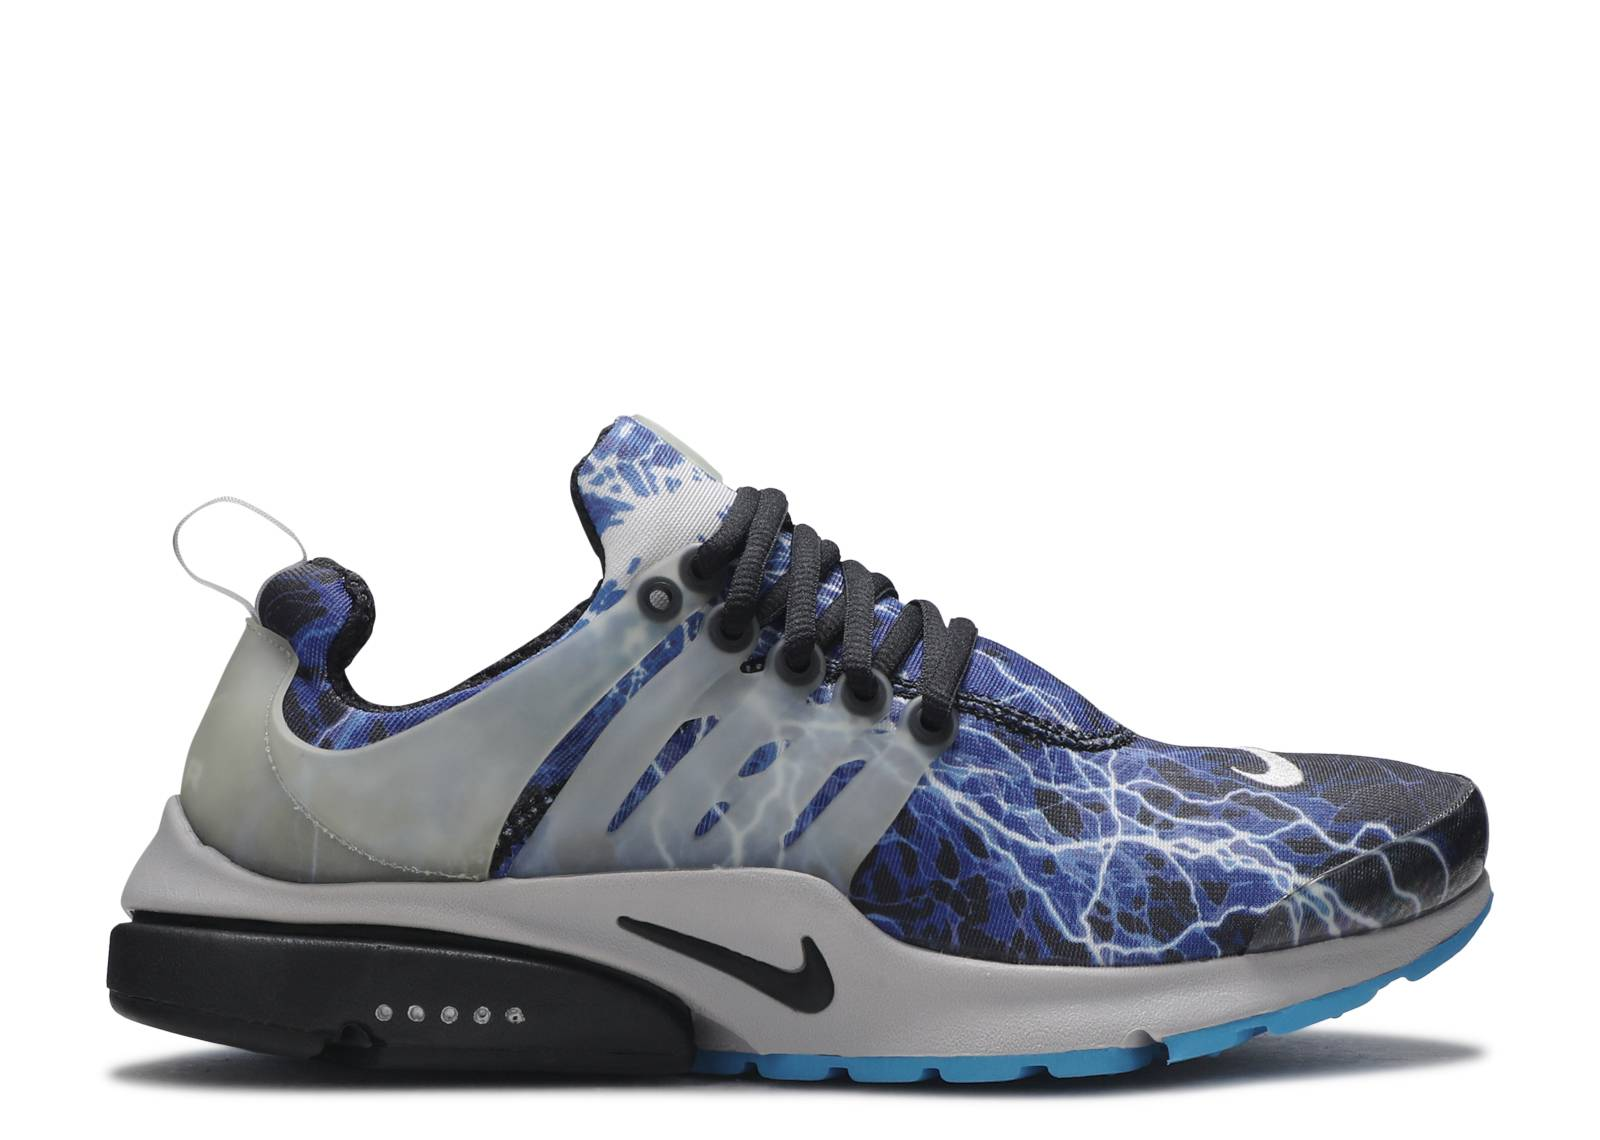 Nike Air Presto Qs Lightning